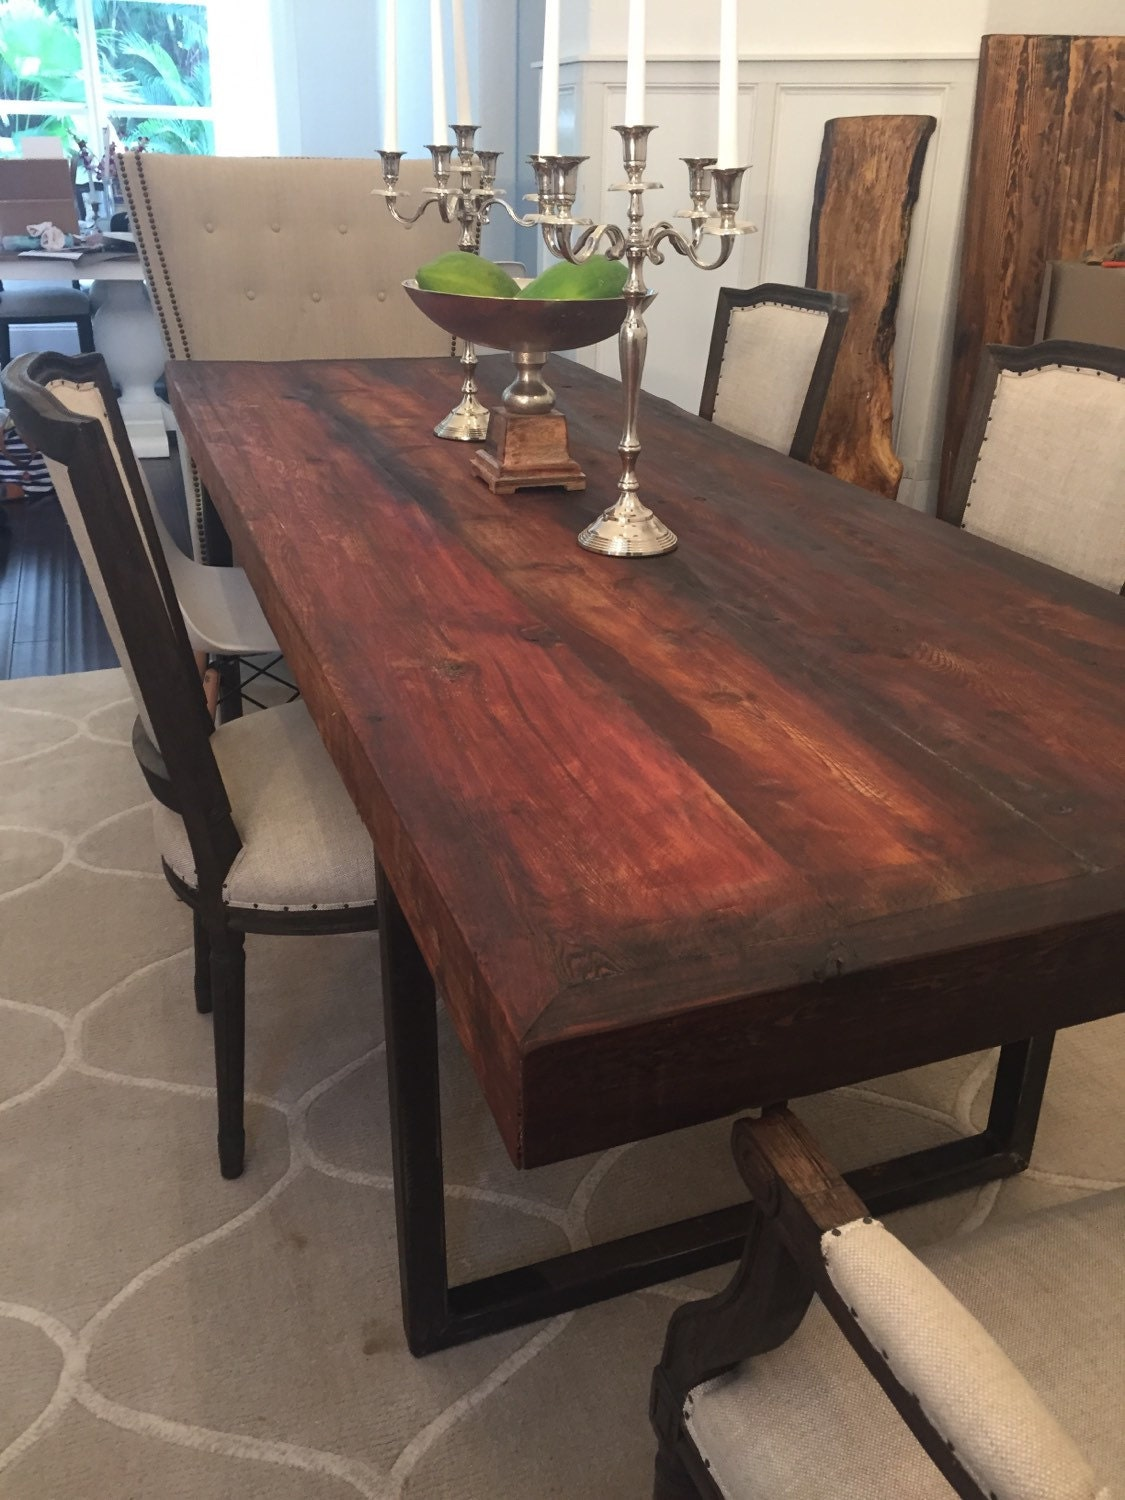 Sale Rustic Reclaimed Cedar Dining Table By Umbuzorustic